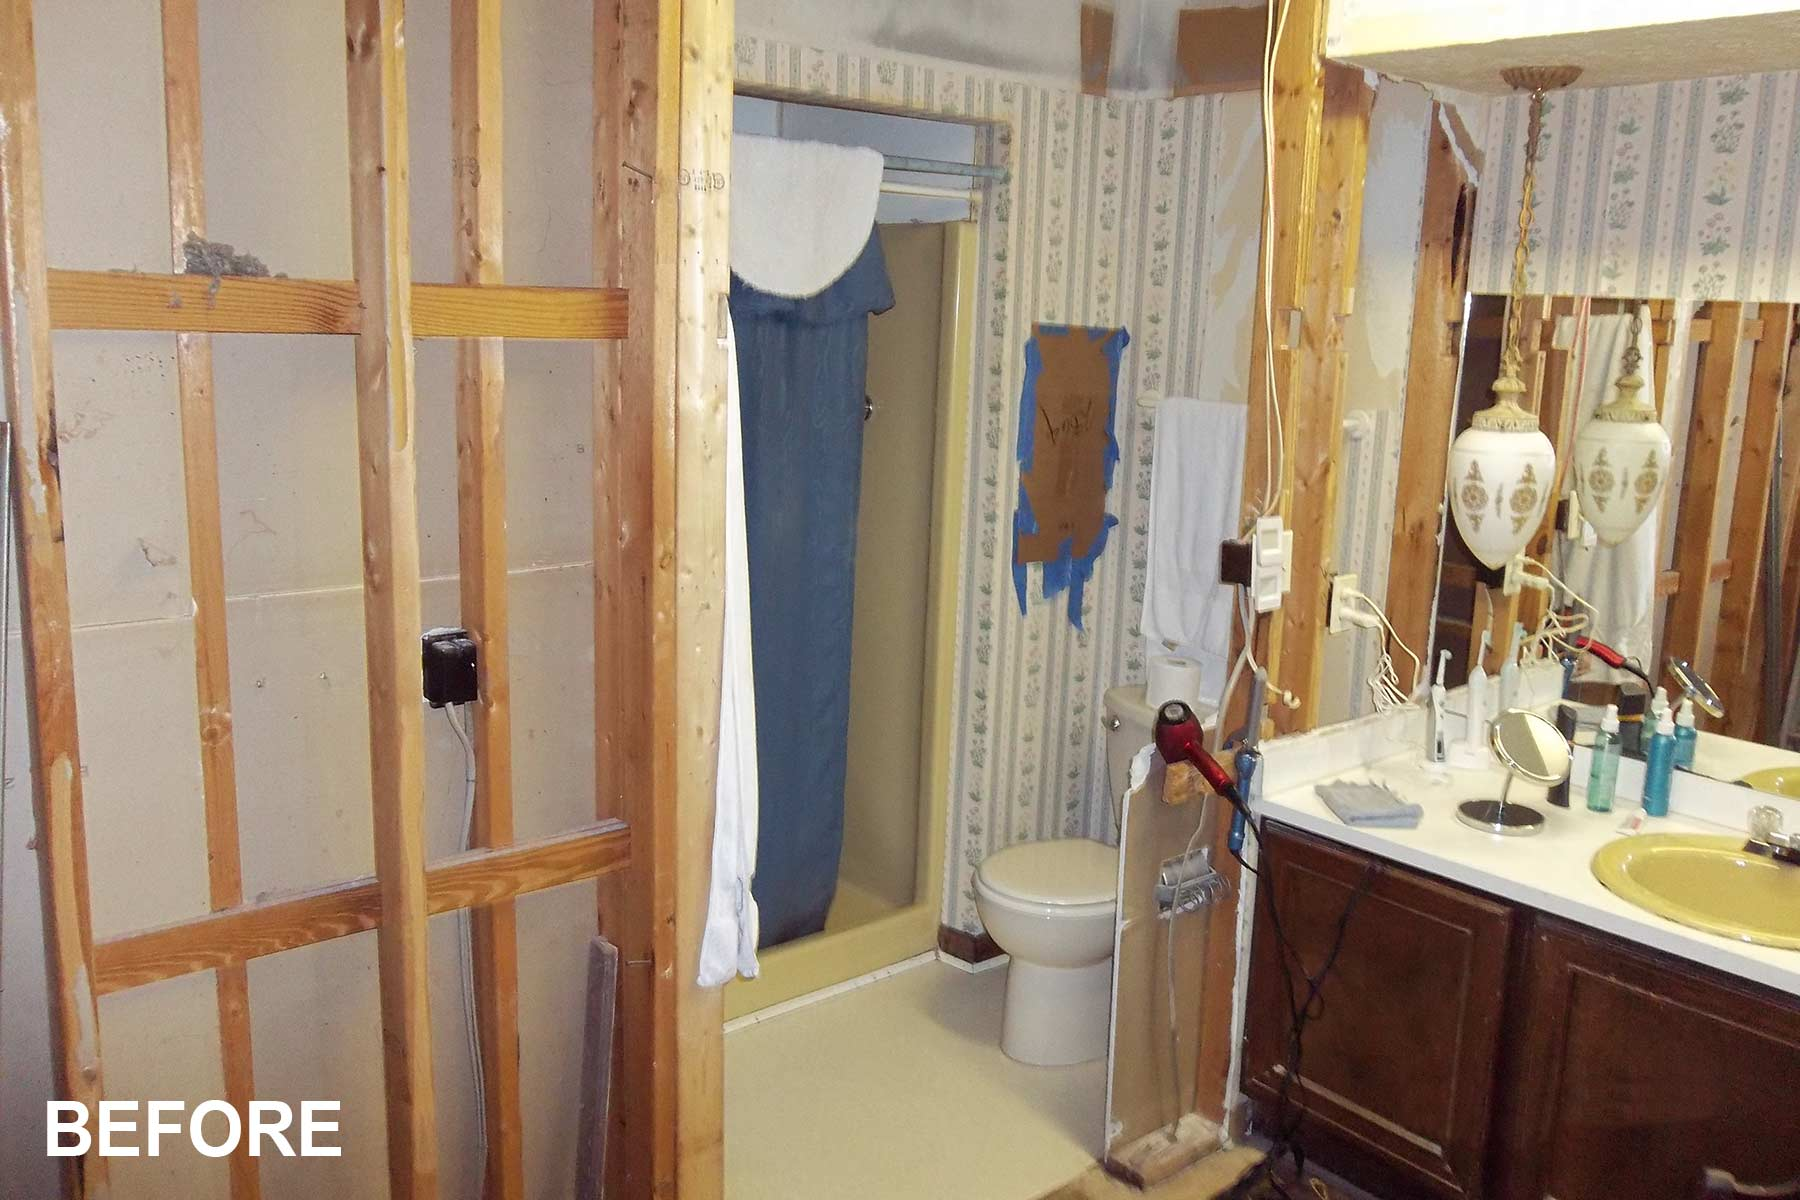 Before bathroom was remodeled